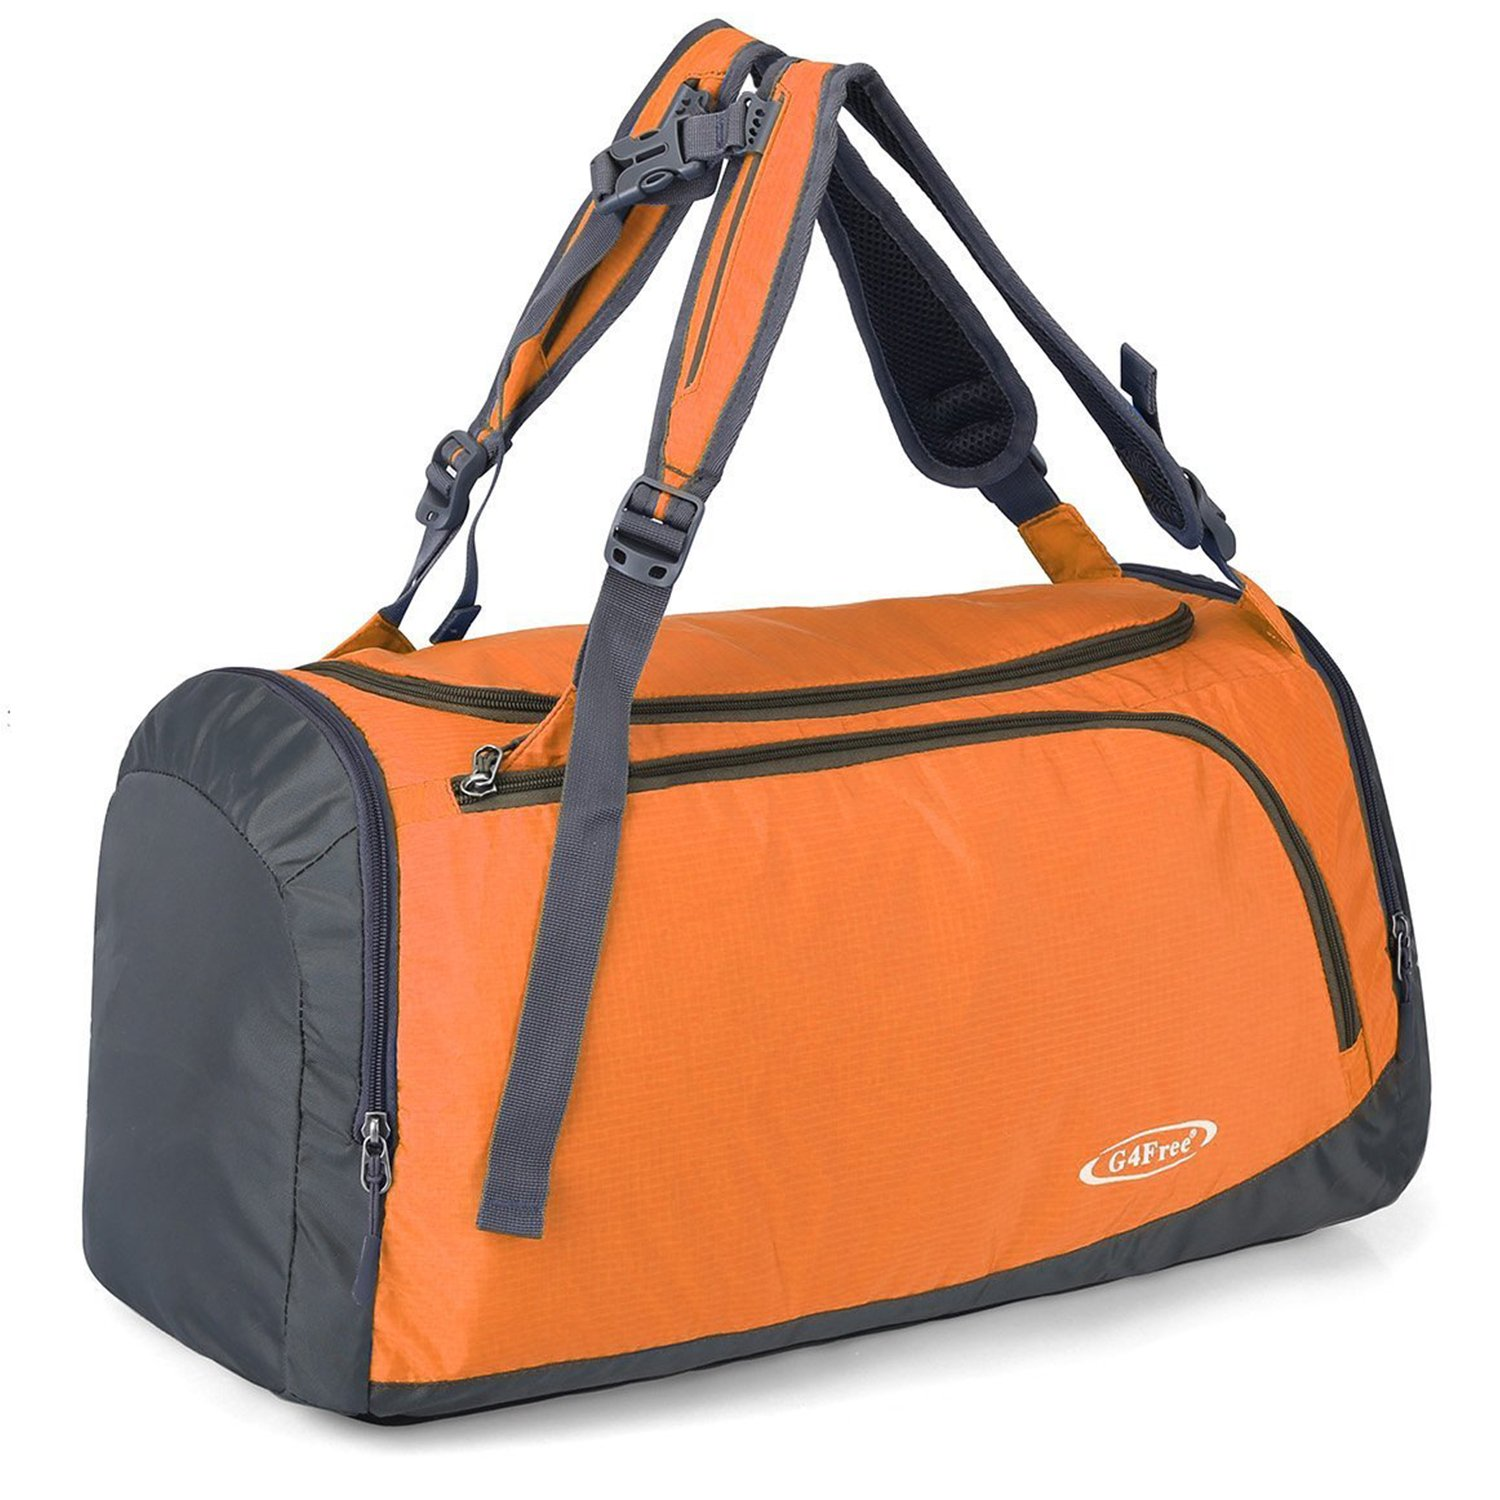 G4Free 35L Lightweight Sports Gym Tote Bag Travel Duffle Backpack Weekend Bag with Shoes Compartment